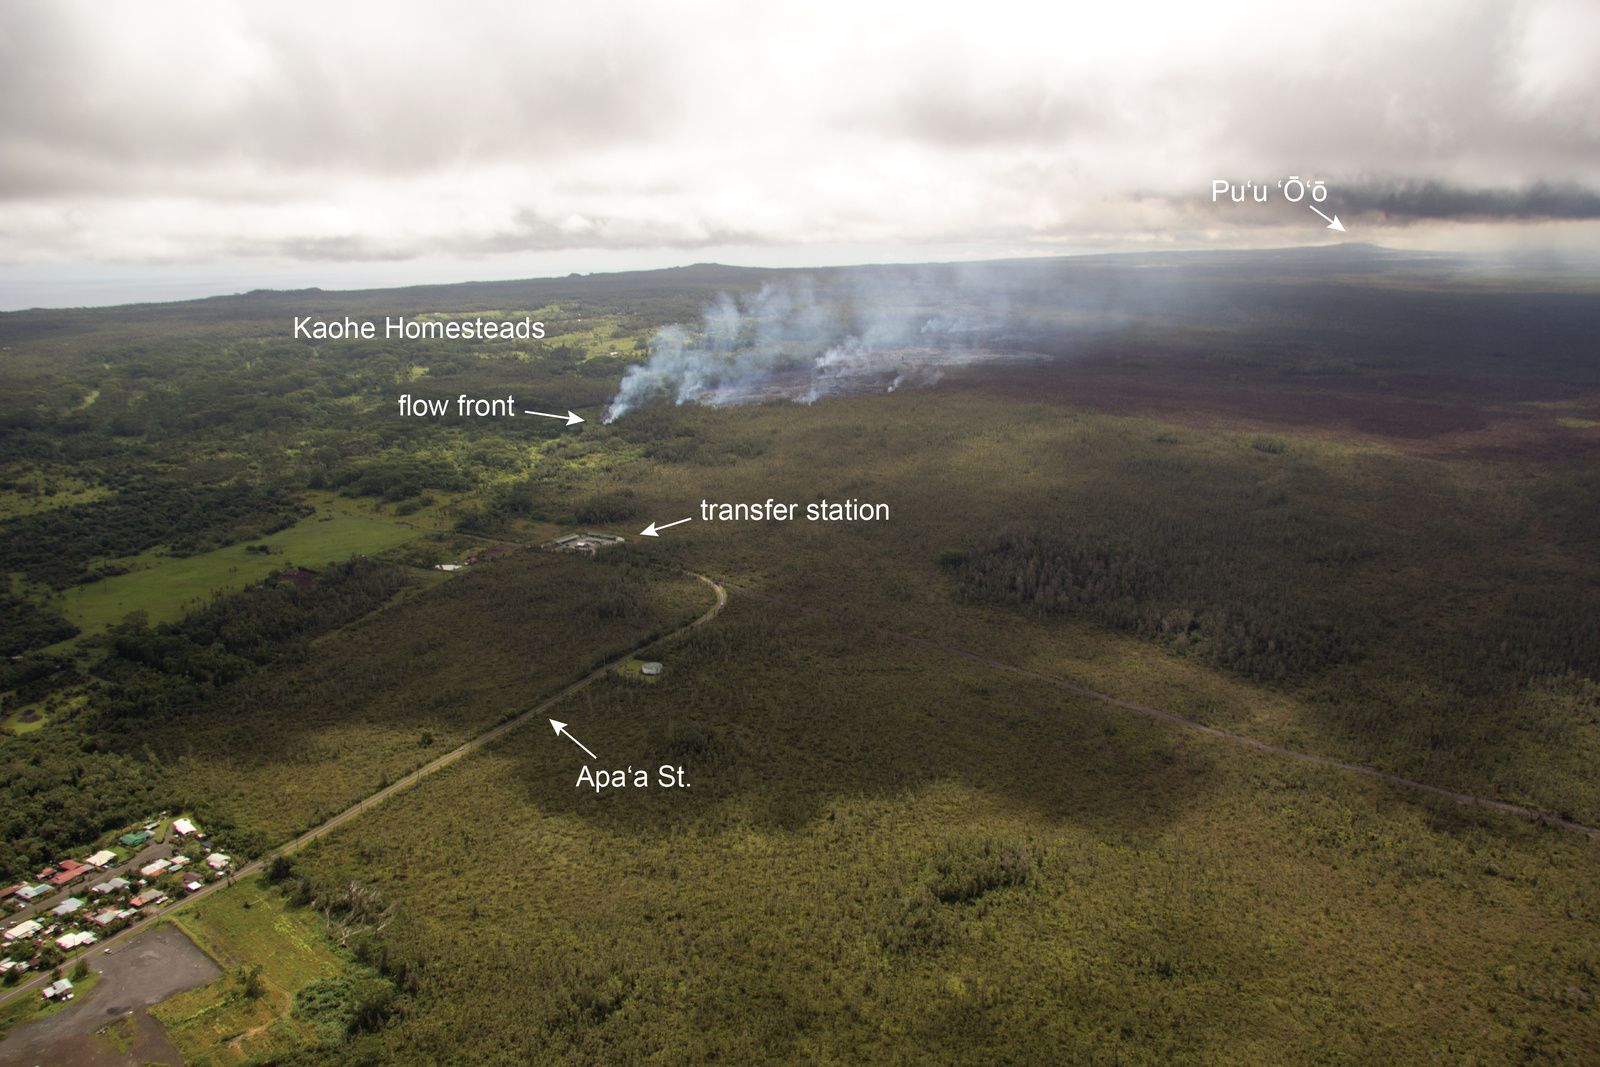 East Rift Zone - View of the site of the 27 June's lava flow, from its origin on the slopes of Pu'u O'o to the lava front, near Apa'a st. The residential area of Pahoa is partially visible in the left corner. - Photo HVO